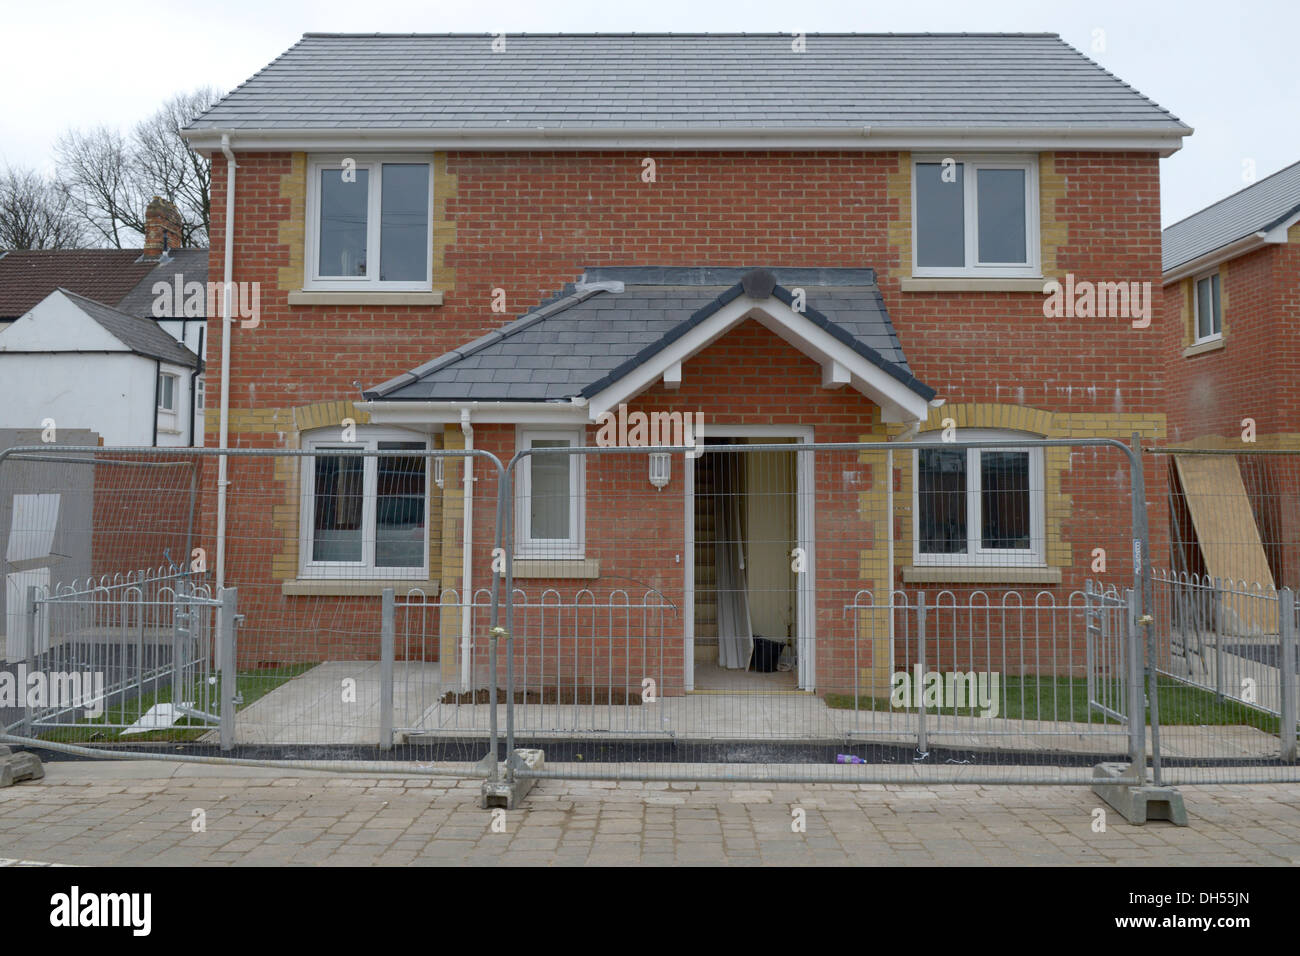 Housing Development In Adamsdown Cardiff Small Affordable Homes